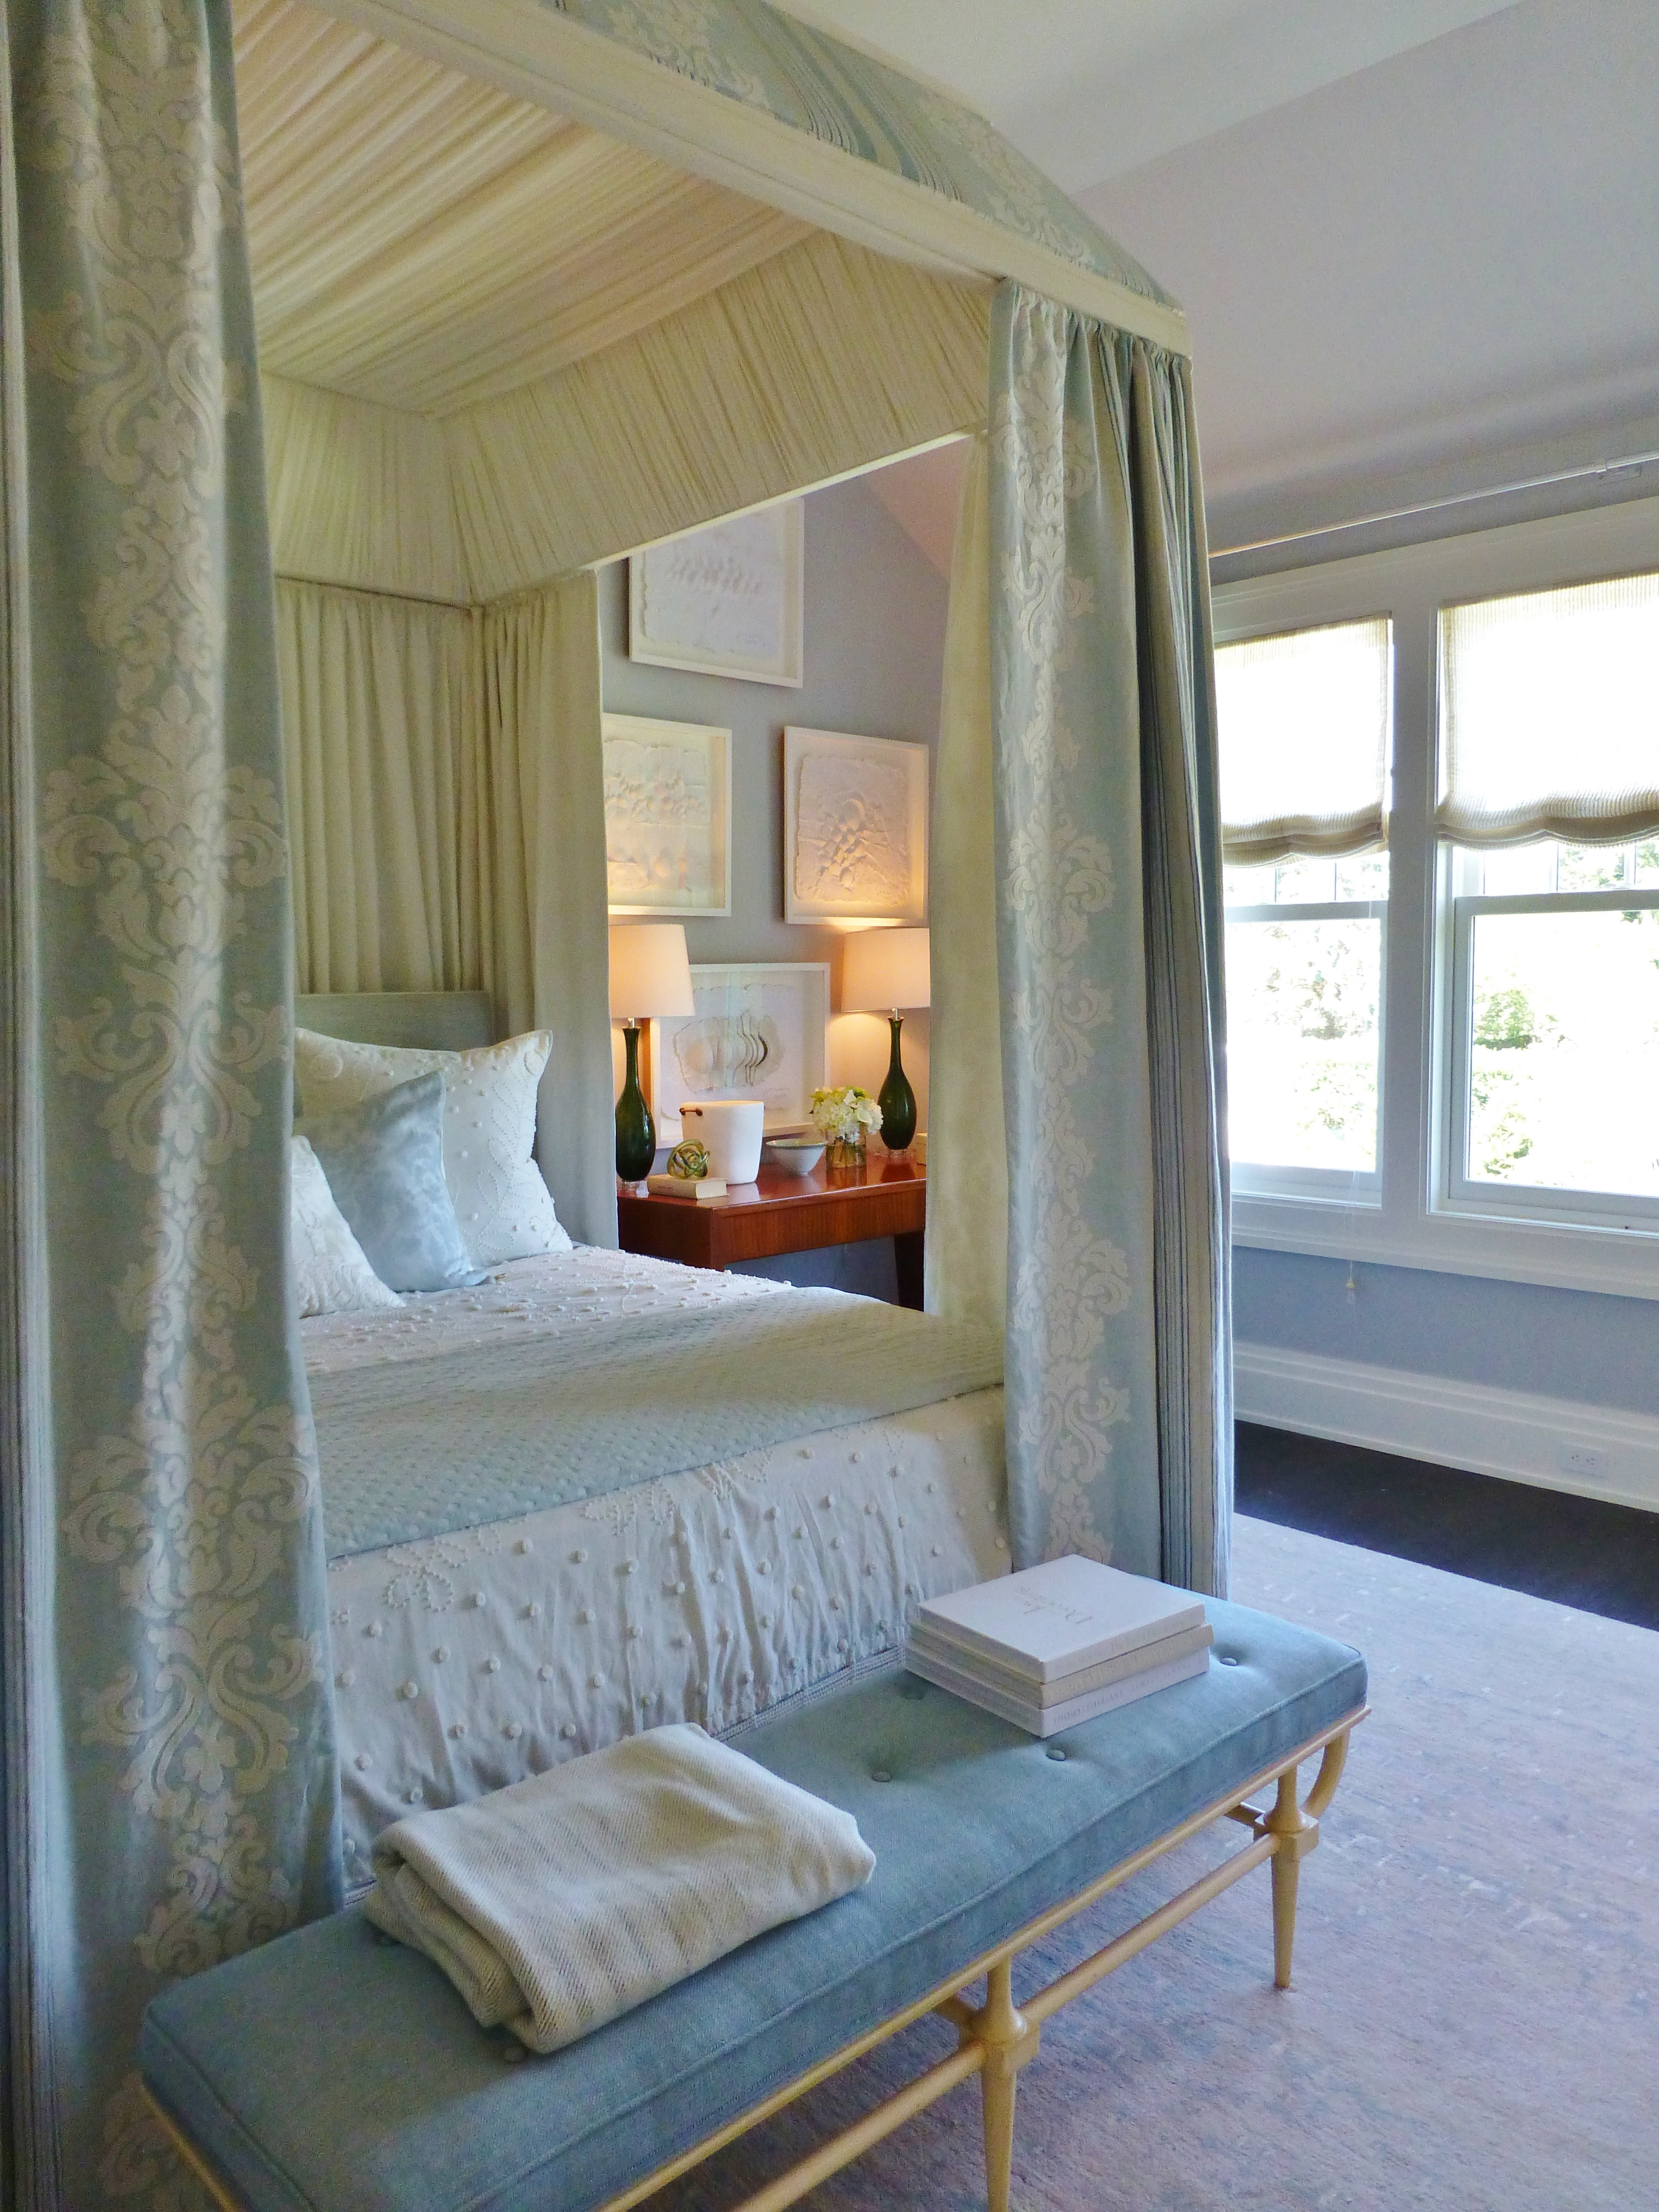 2014 Hampton Designer Showhouse Ultra Soft And Soothing Bedroom In The Palest Of Blue Kristine Robinson S Interiors And So Much More